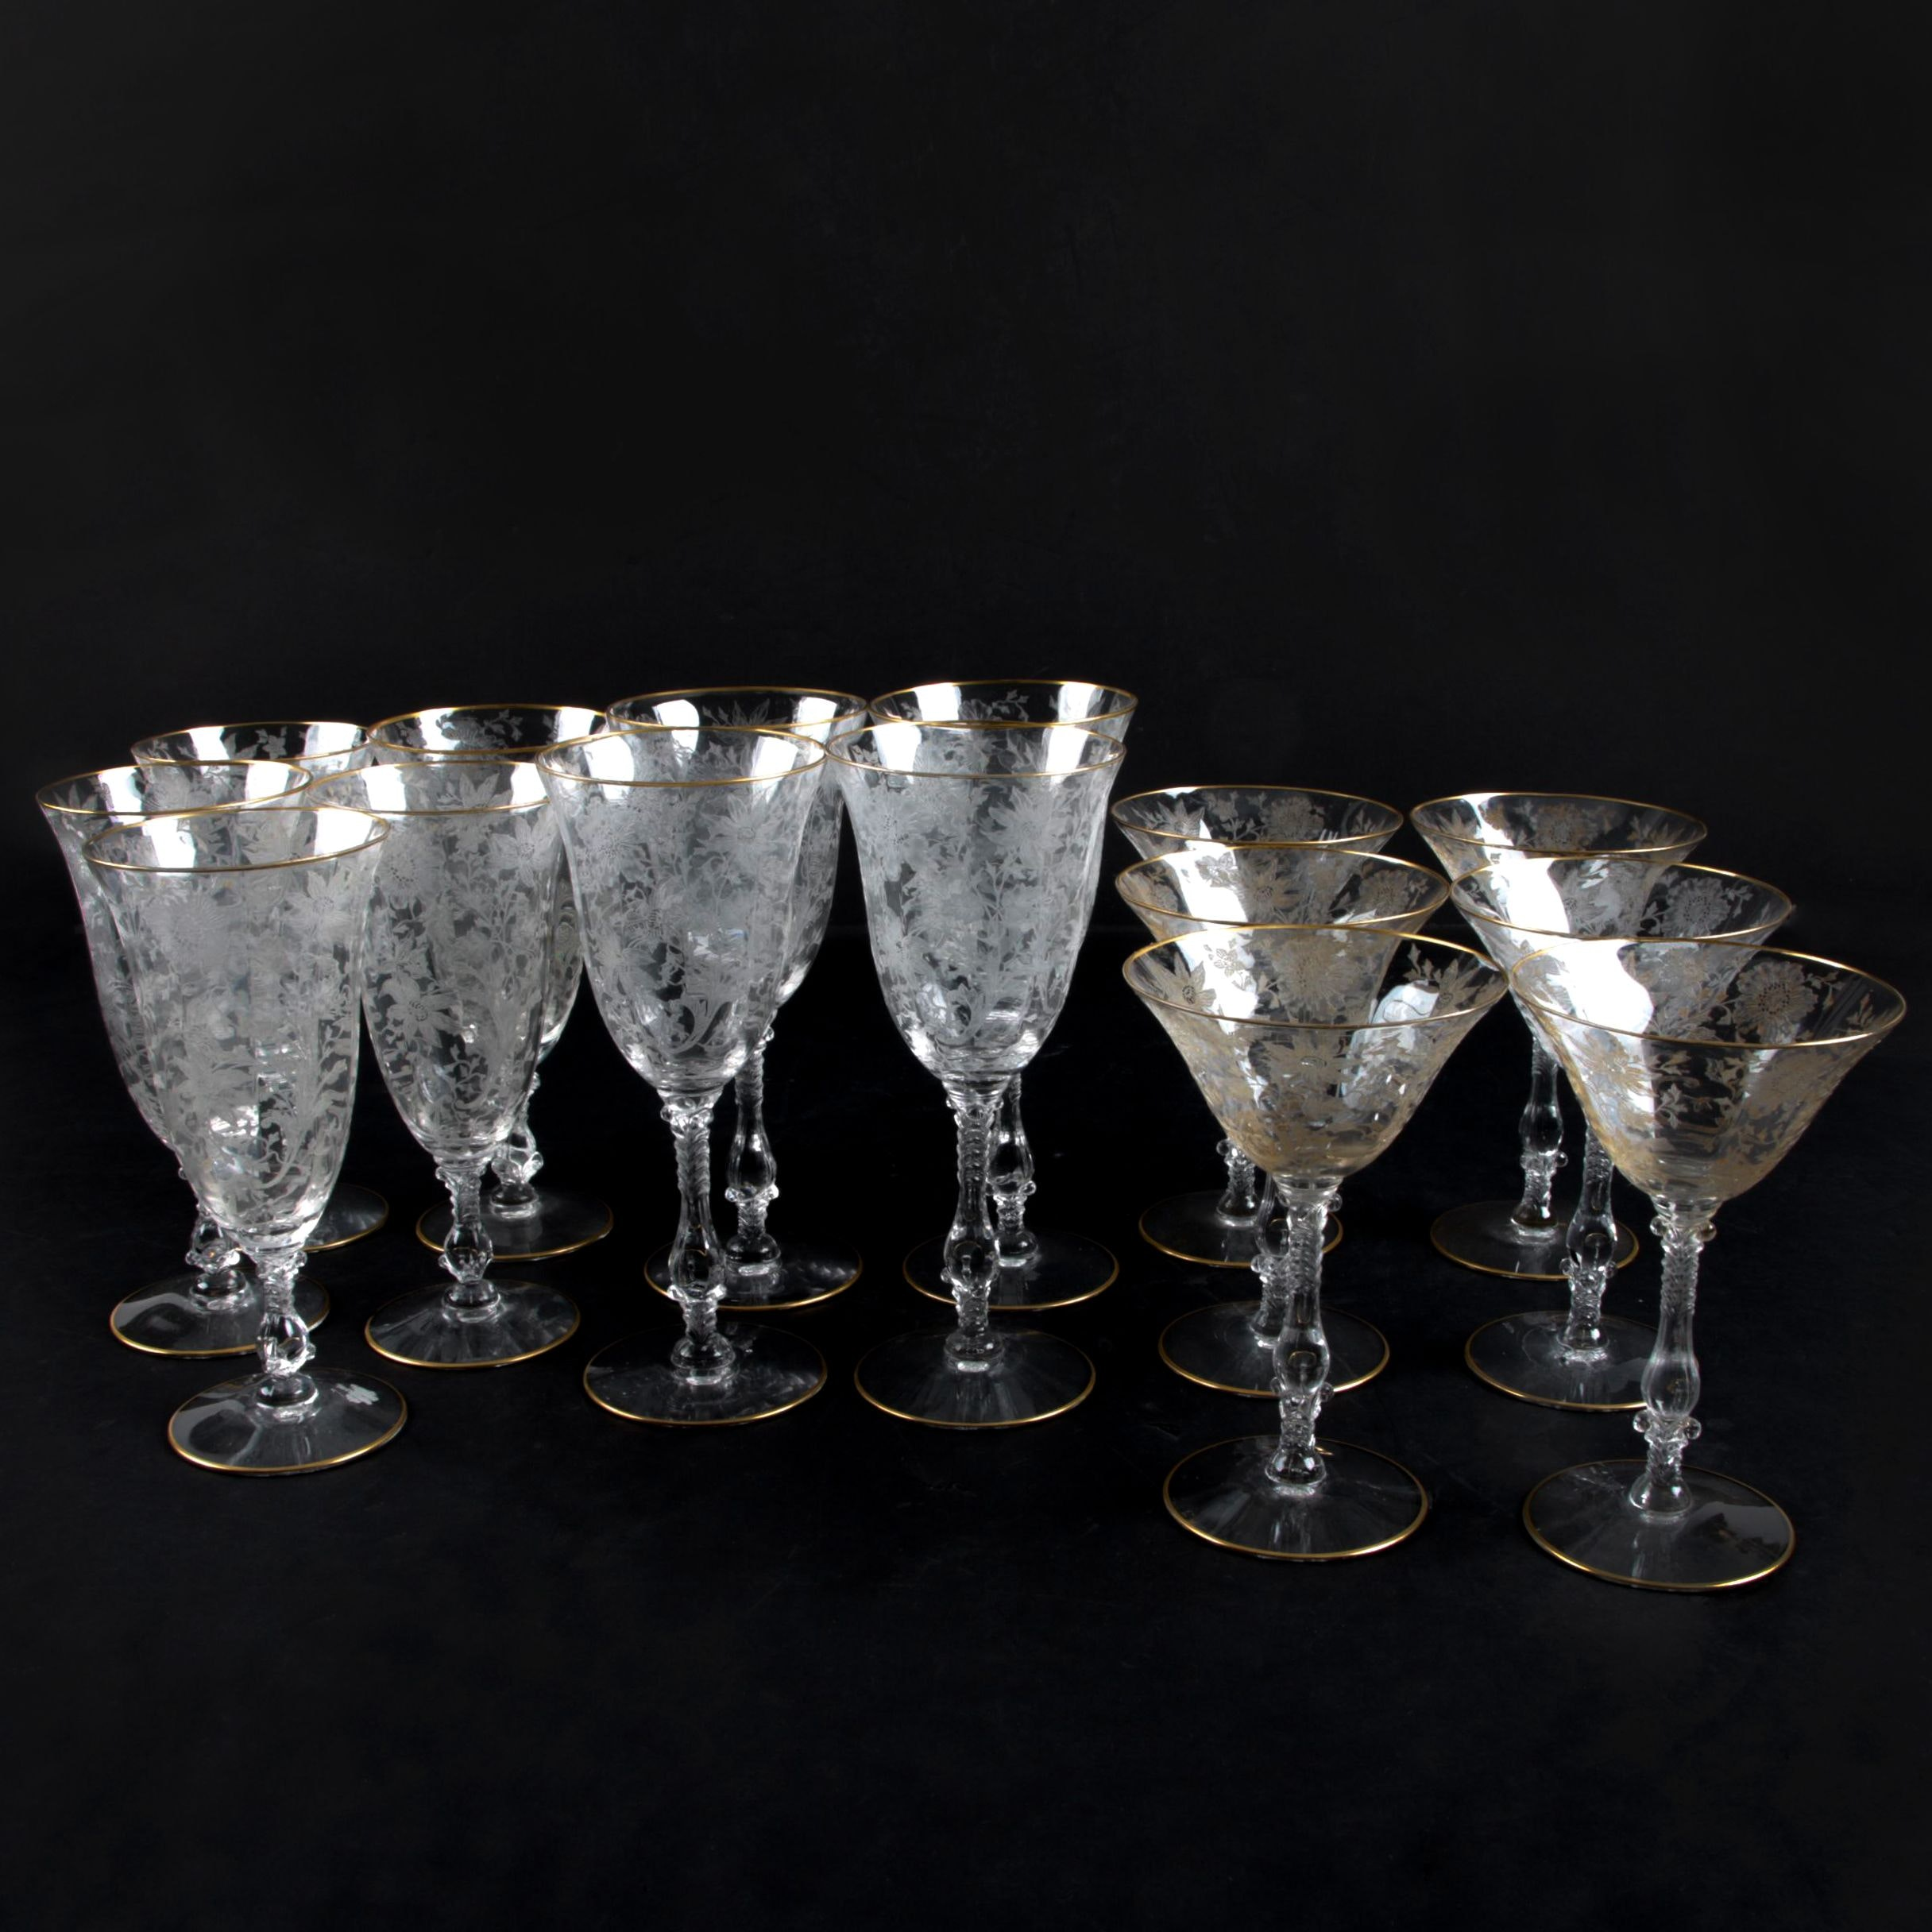 Etched Floral Glass Stemware with Gilt Trim